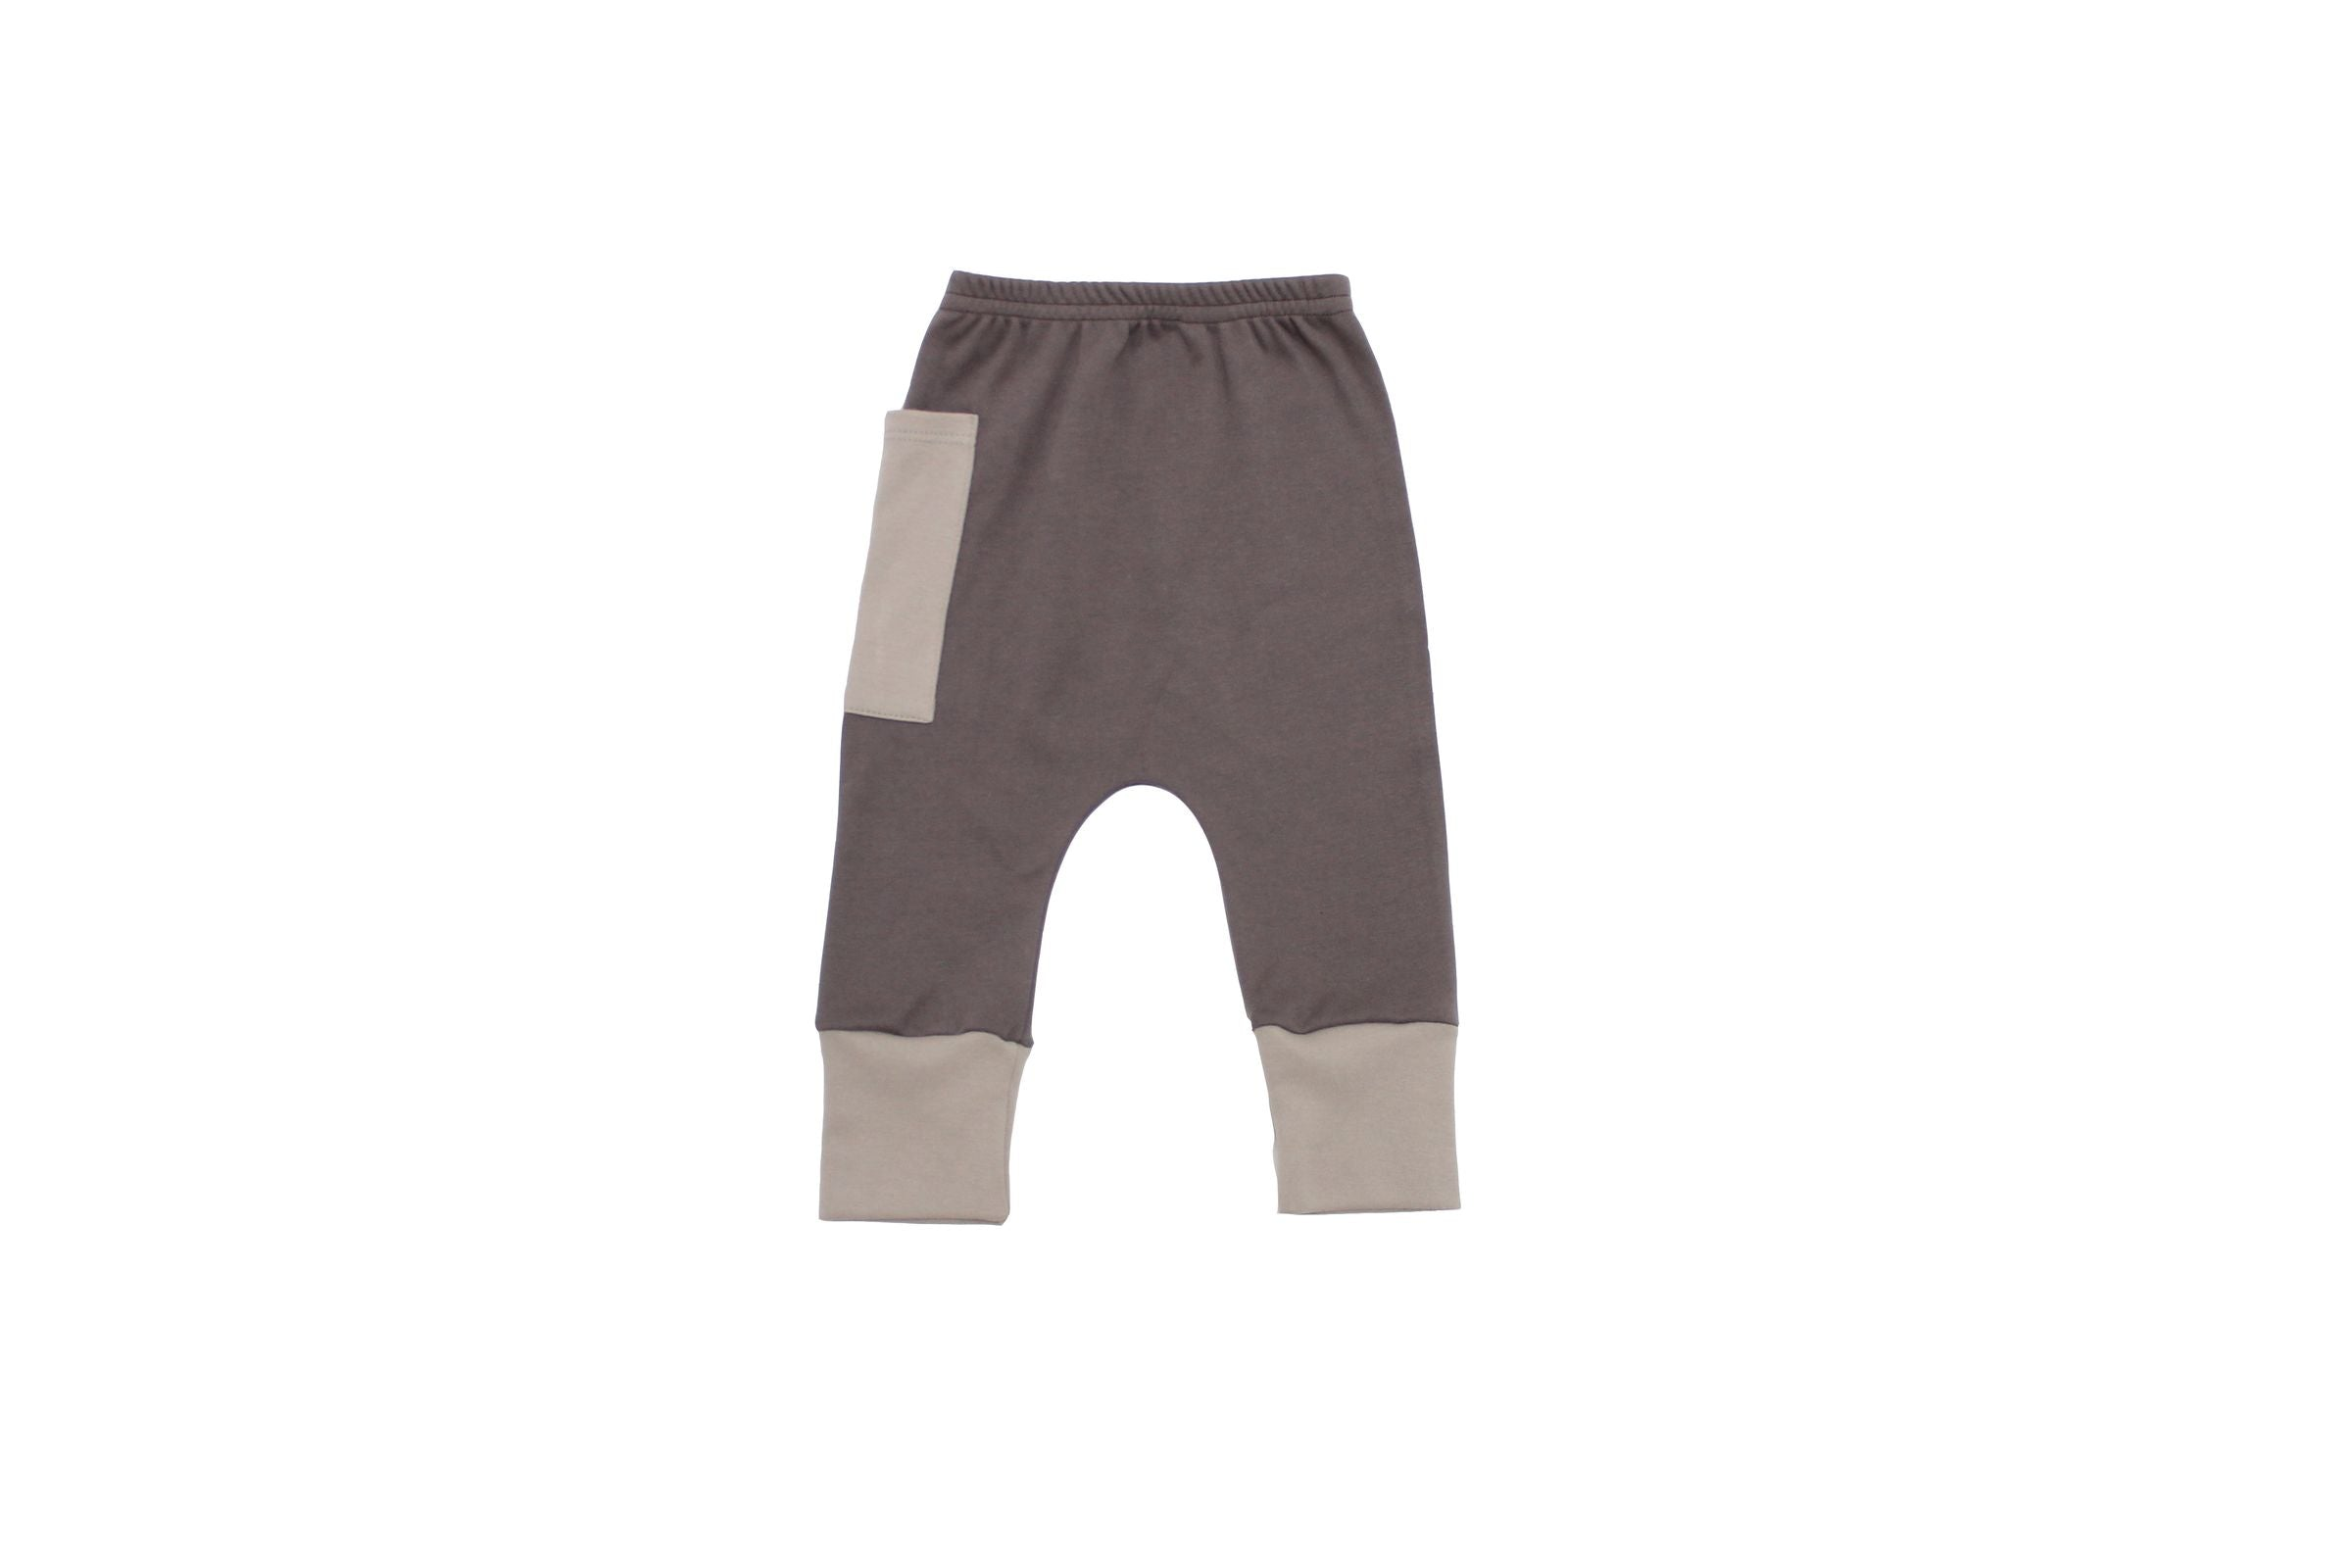 Euro Jogger with Contrast Pocket - Seal Grey with Dove 1